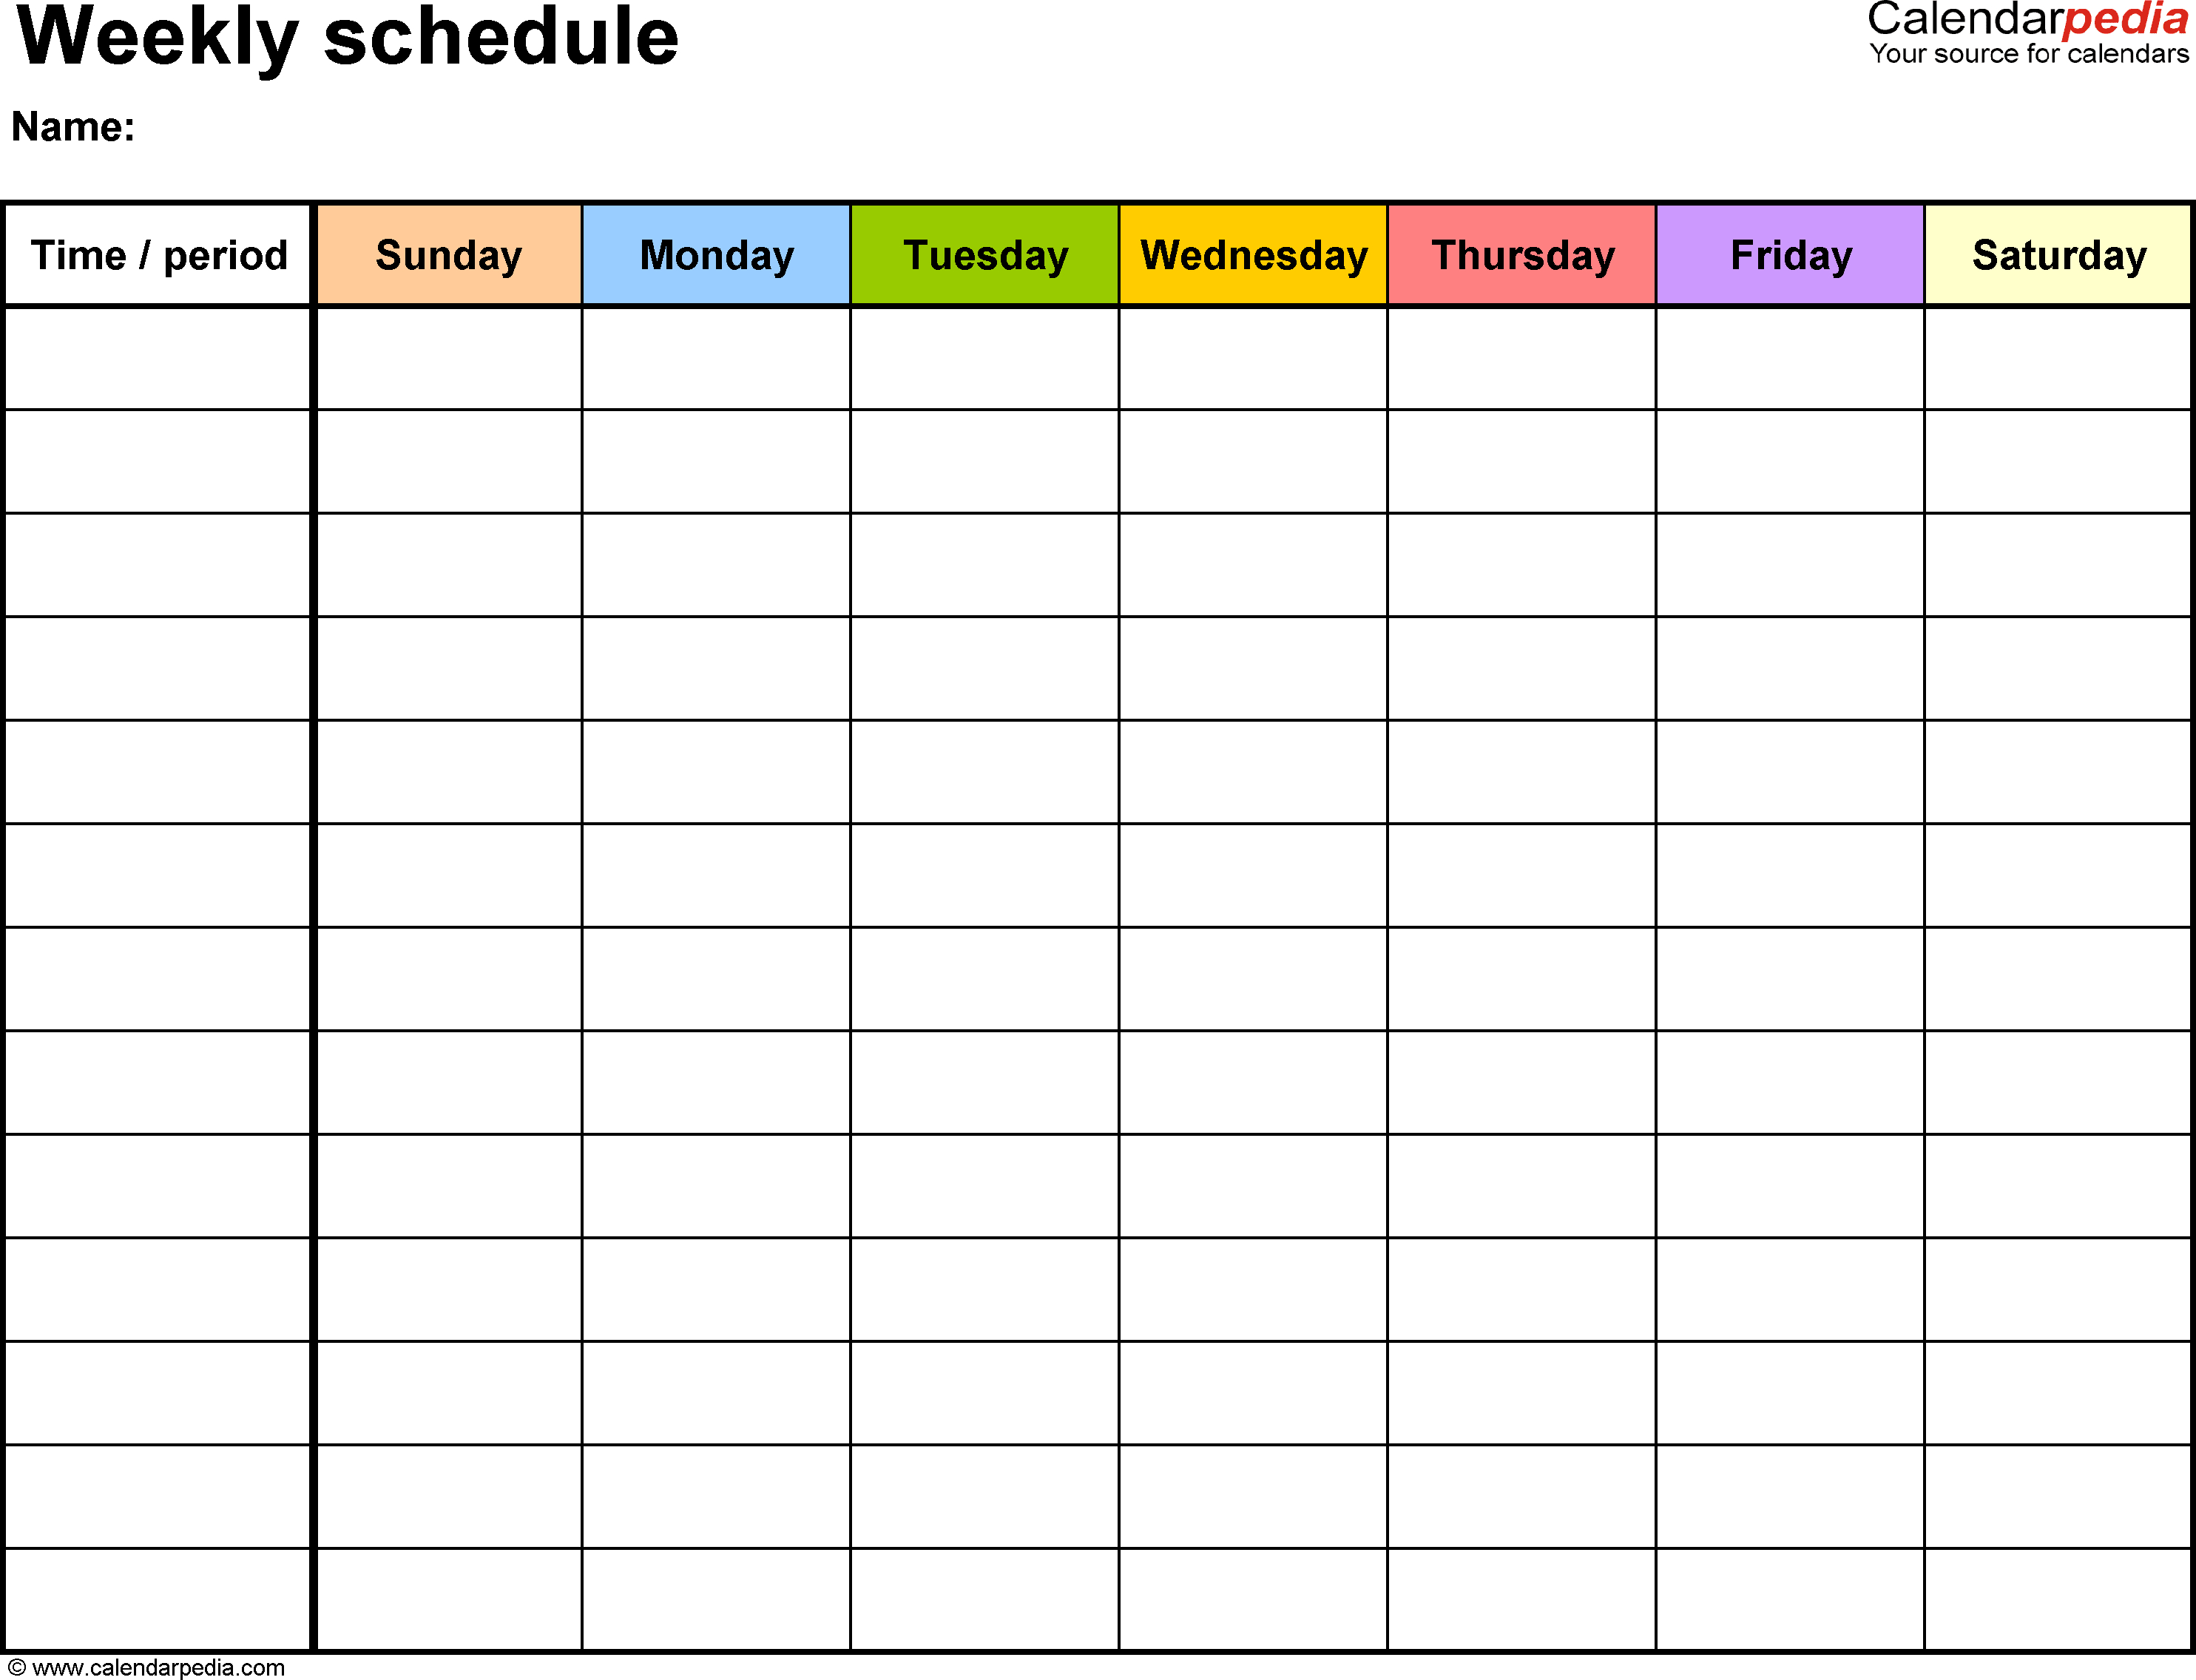 Weekly Schedule Template For Word Version 13: Landscape, 1 Monday Through Sunday Calendar Word